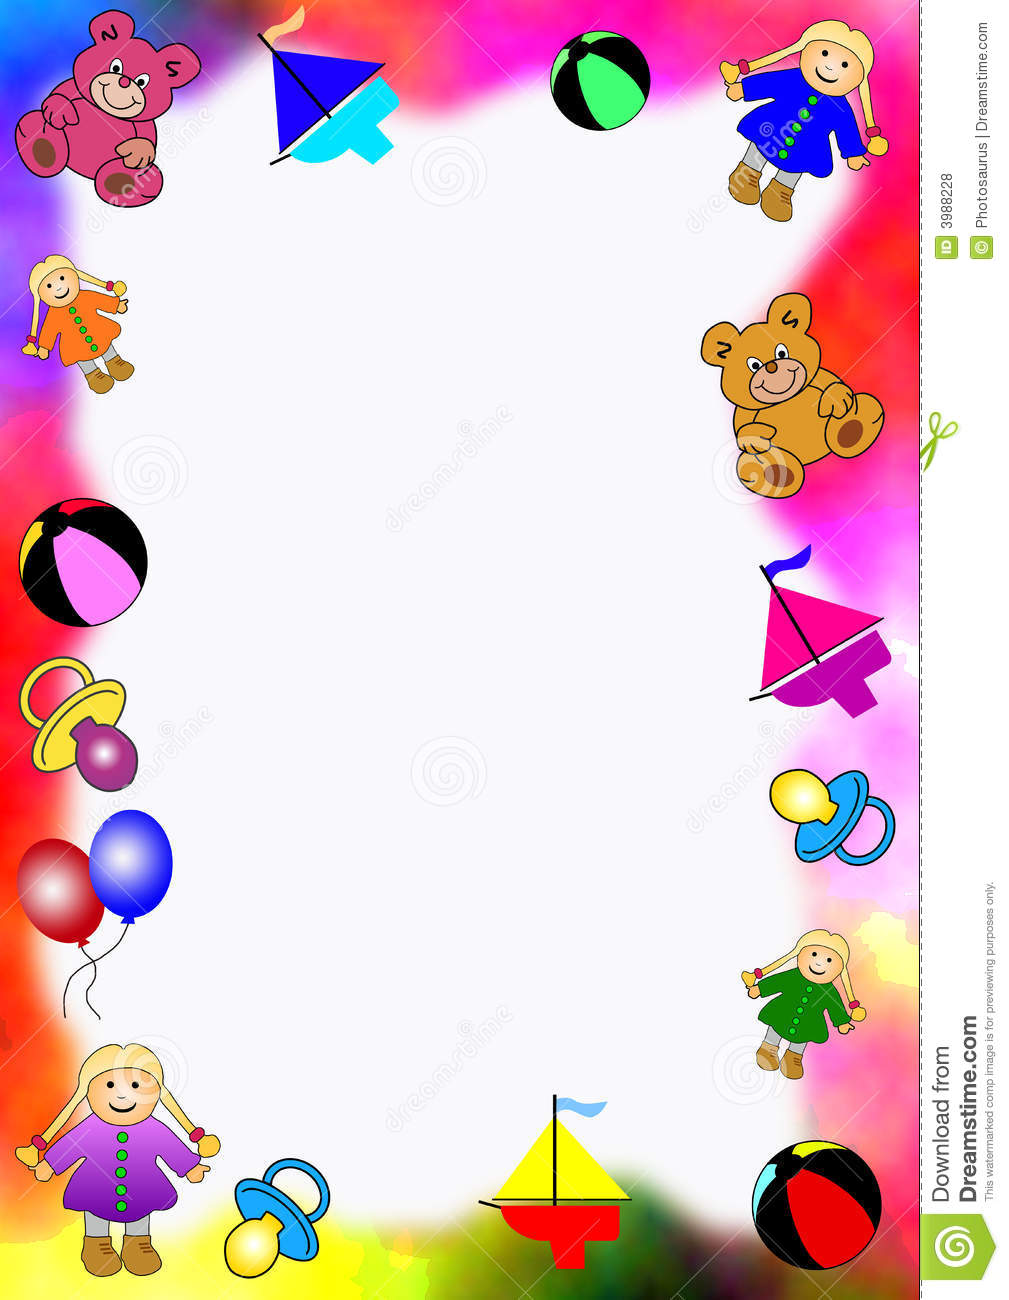 Boy Toys Border : Colored border of baby toys stock illustration